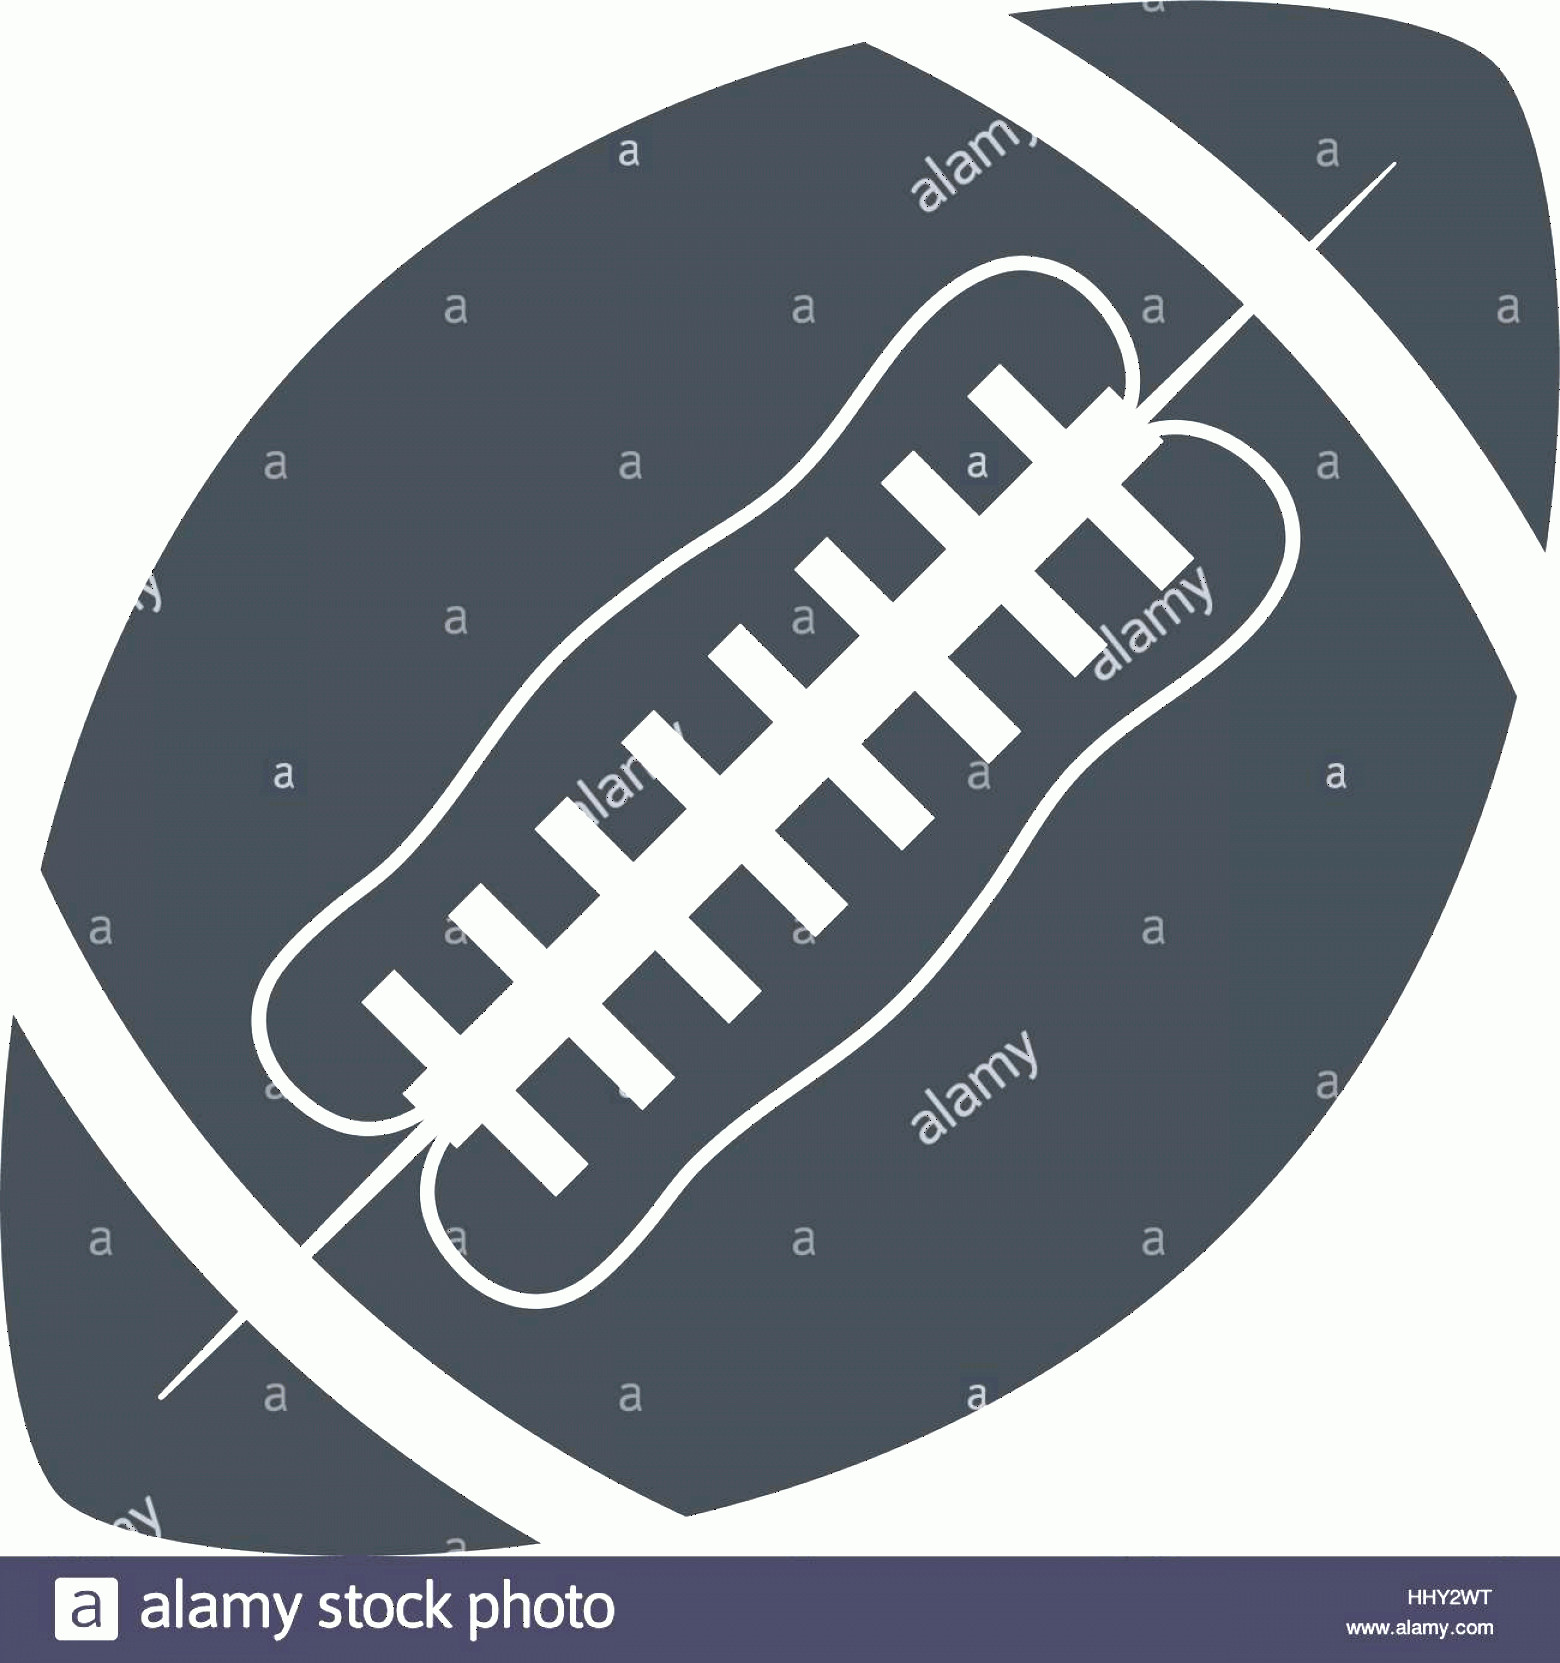 Football Laces Vector Silhouette: Stock Photo Silhouette Ball American Football Sport